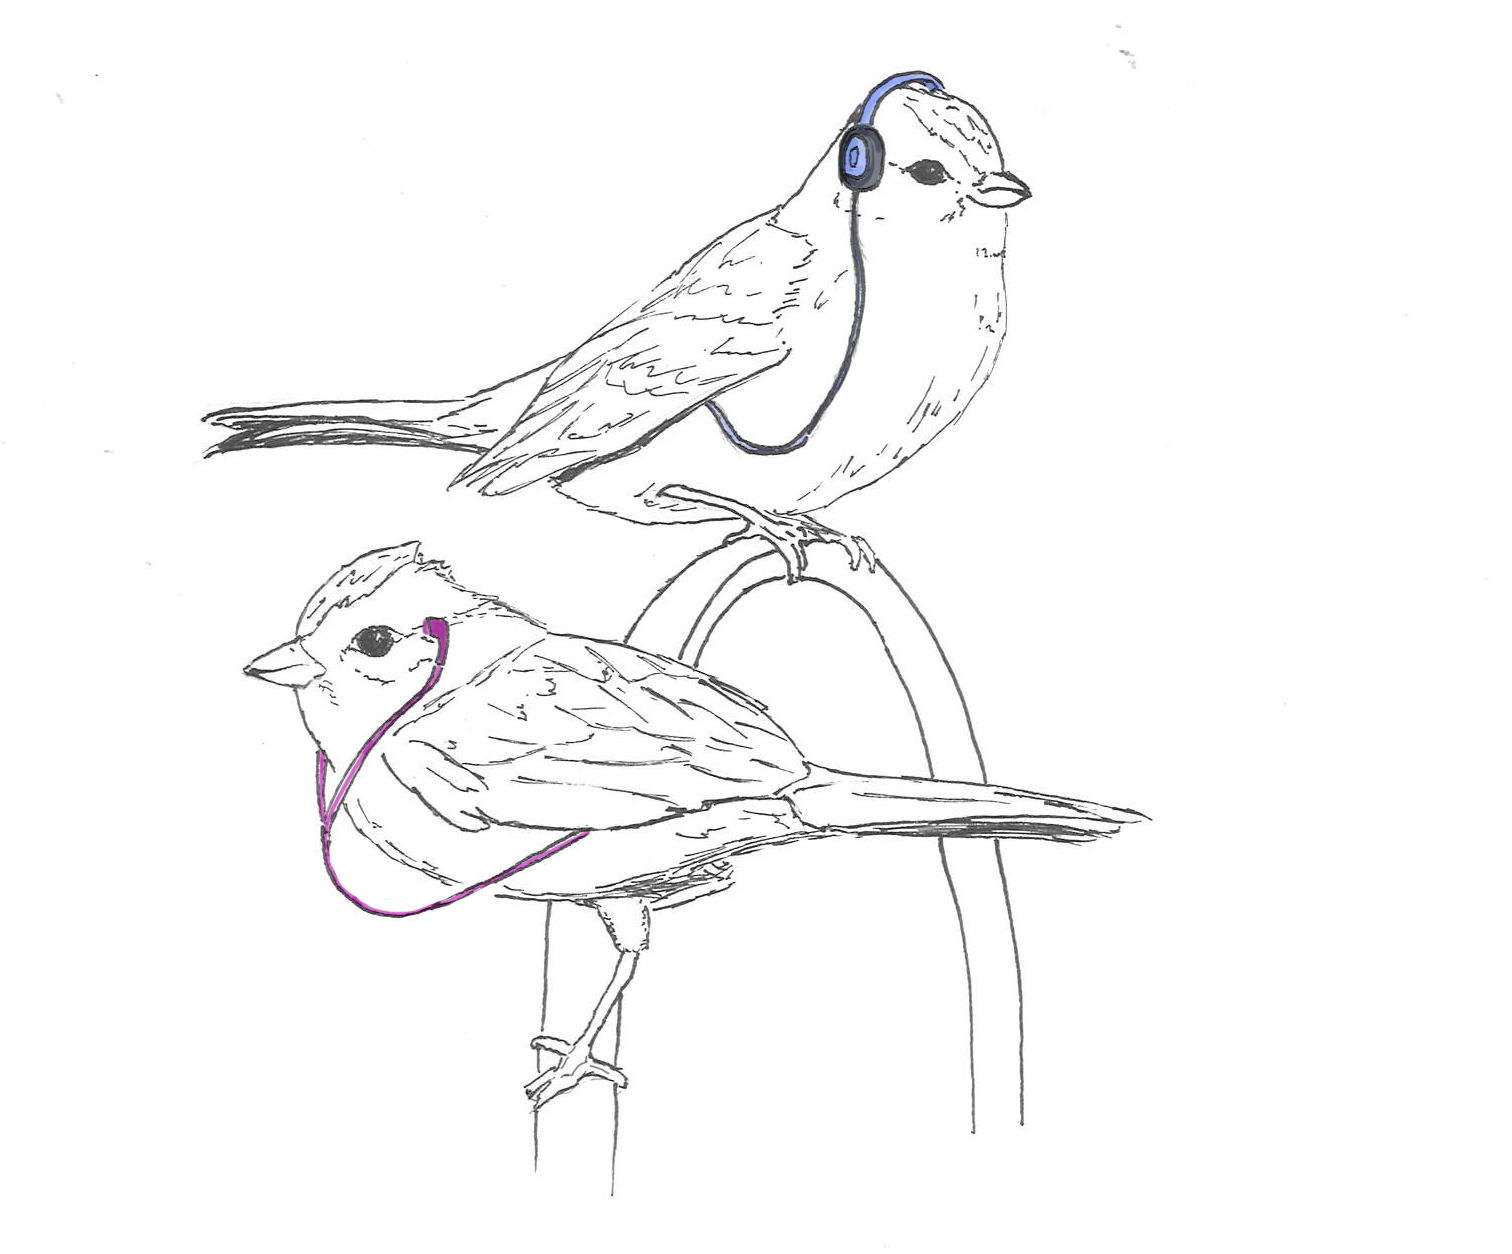 how to draw a sparrow step by step how to draw a sparrow step by step drawingforallnet a to draw step sparrow step by how